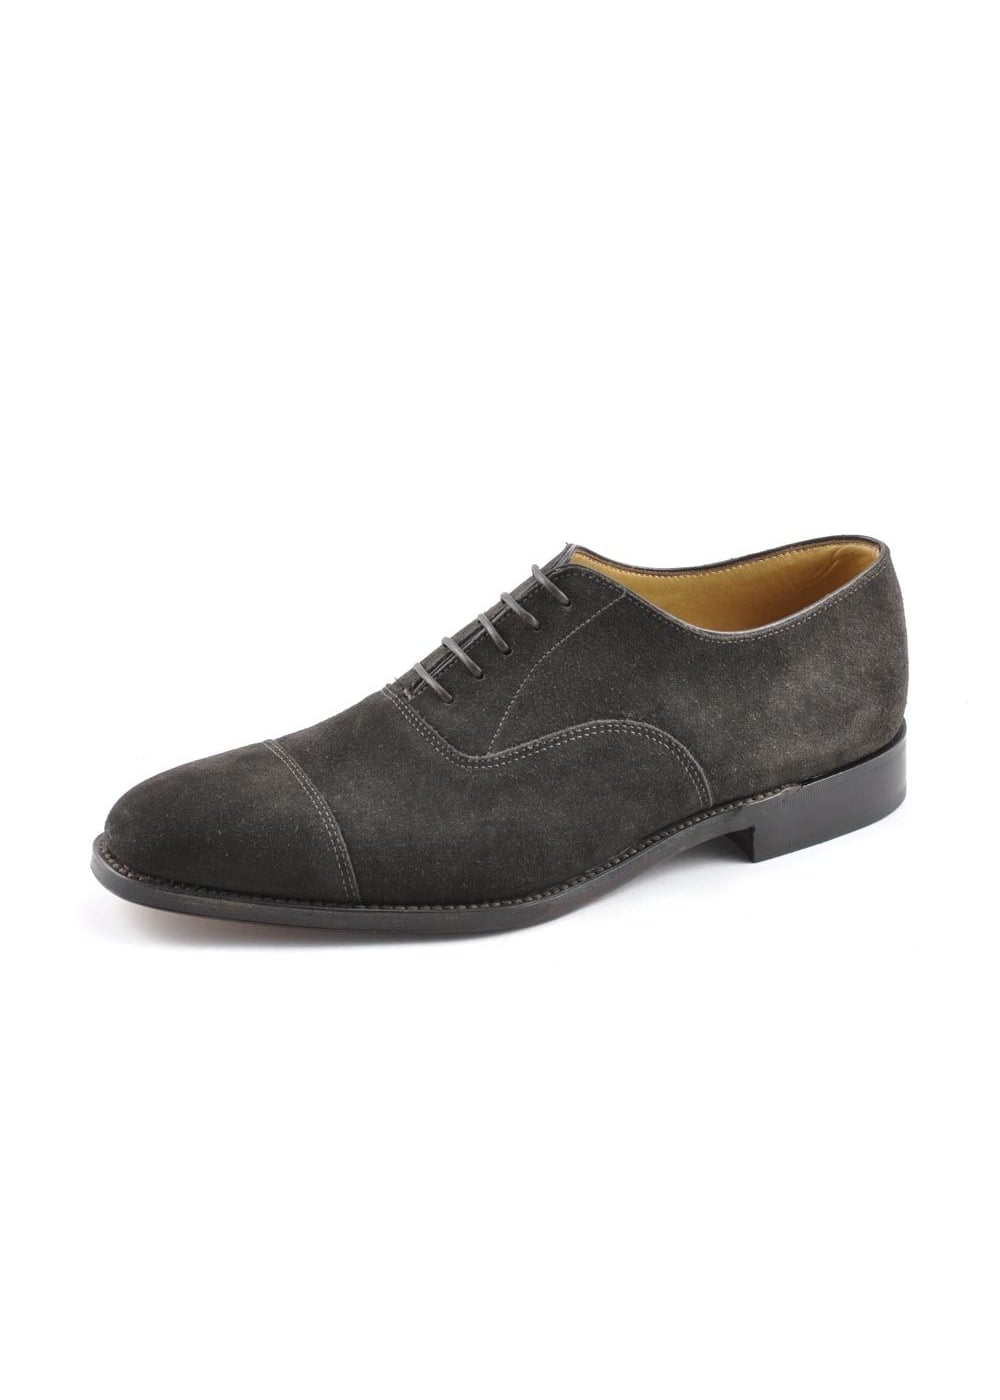 Loake Aldwych Suede Shoes Large Image